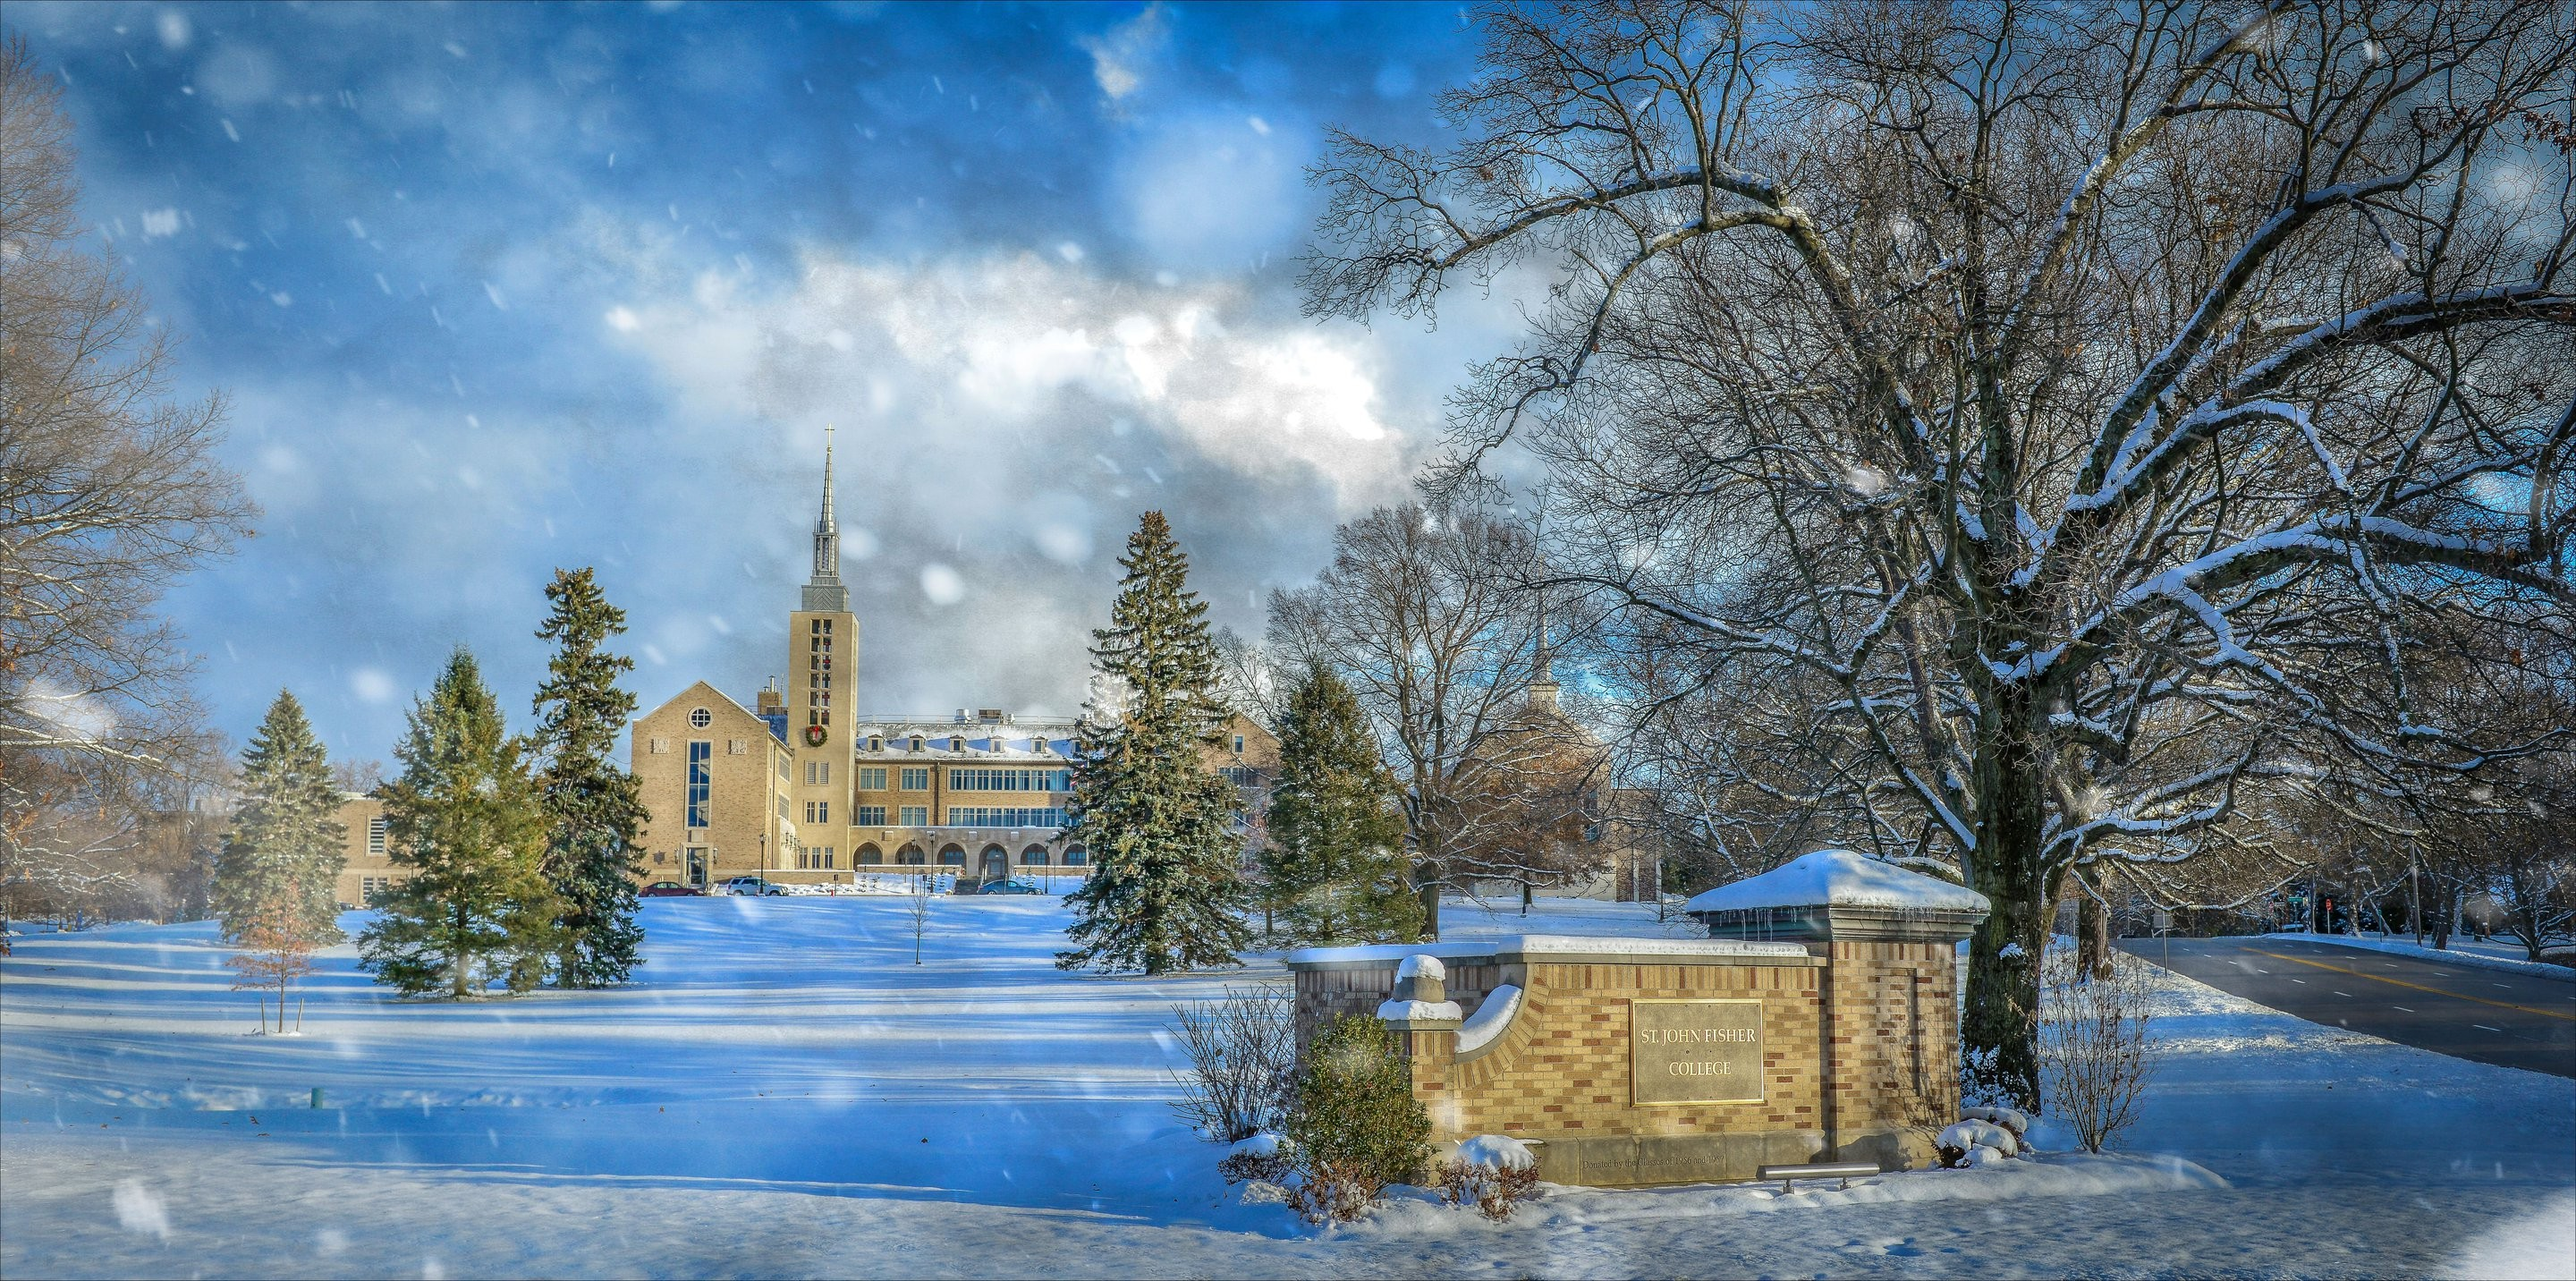 St. John Fisher campus in the snow